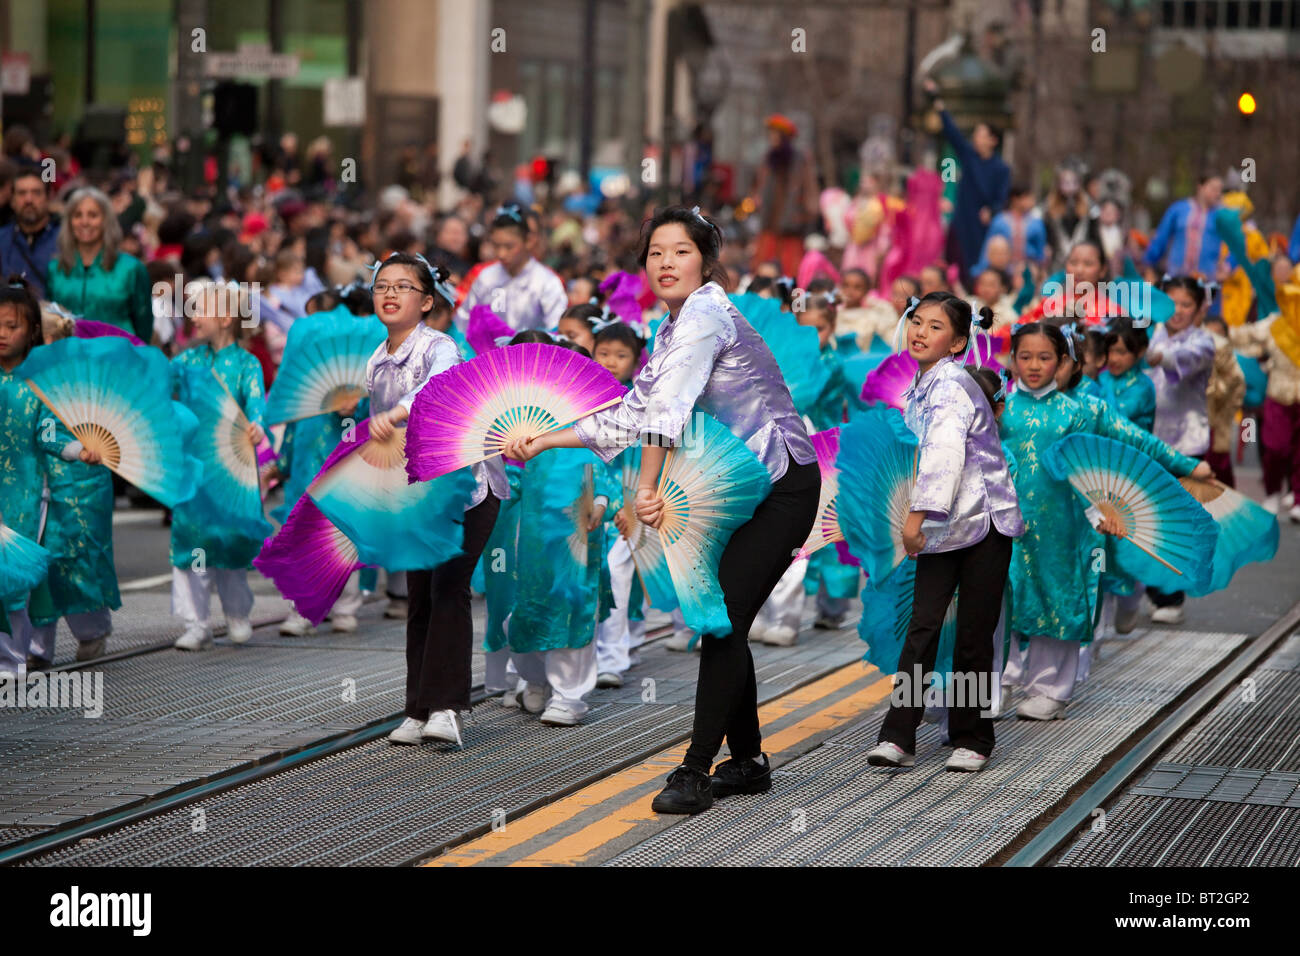 Chinese woman leading a group of children in fan performance during Chinese New Year parade in San Francisco, California, - Stock Image